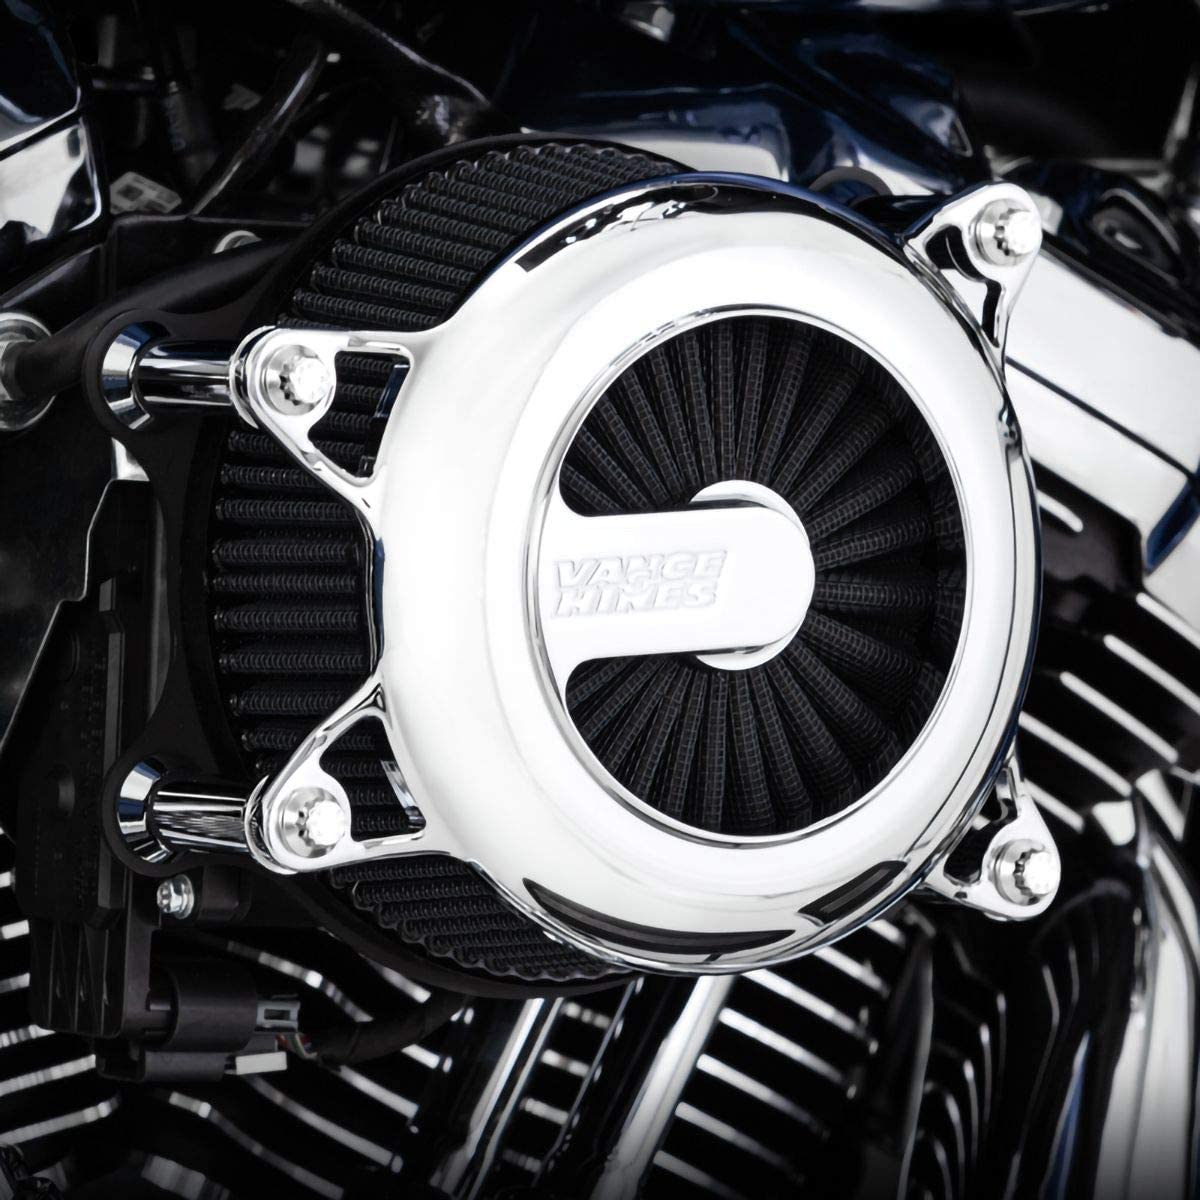 Vance /& Hines Rogue VO2 Air Intake for 17-19 Harley FLHX2 Chrome